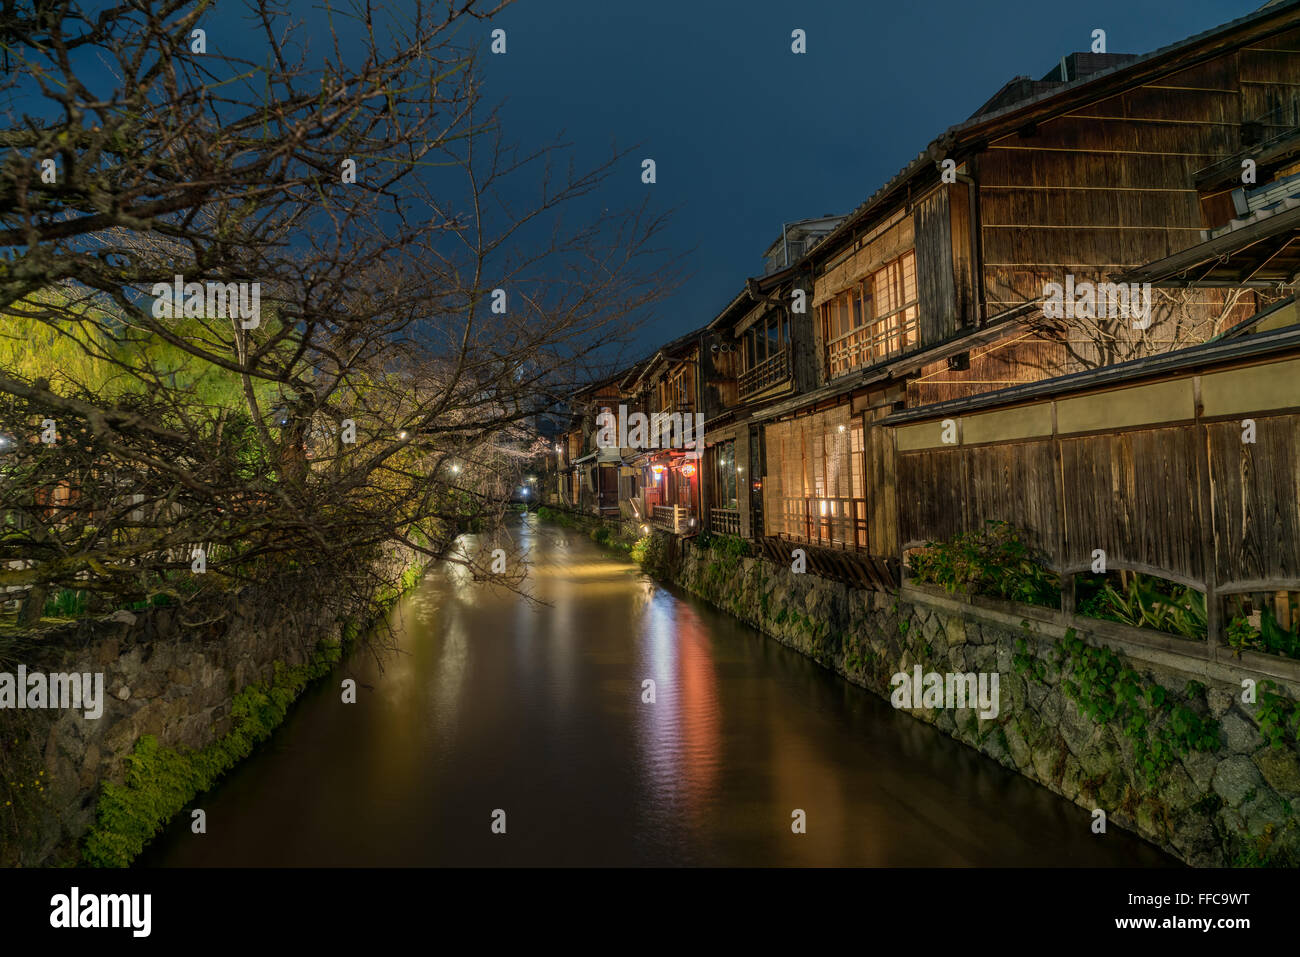 Night View of Gion Shirakawa canal, Kyoto, Japan Stock ...